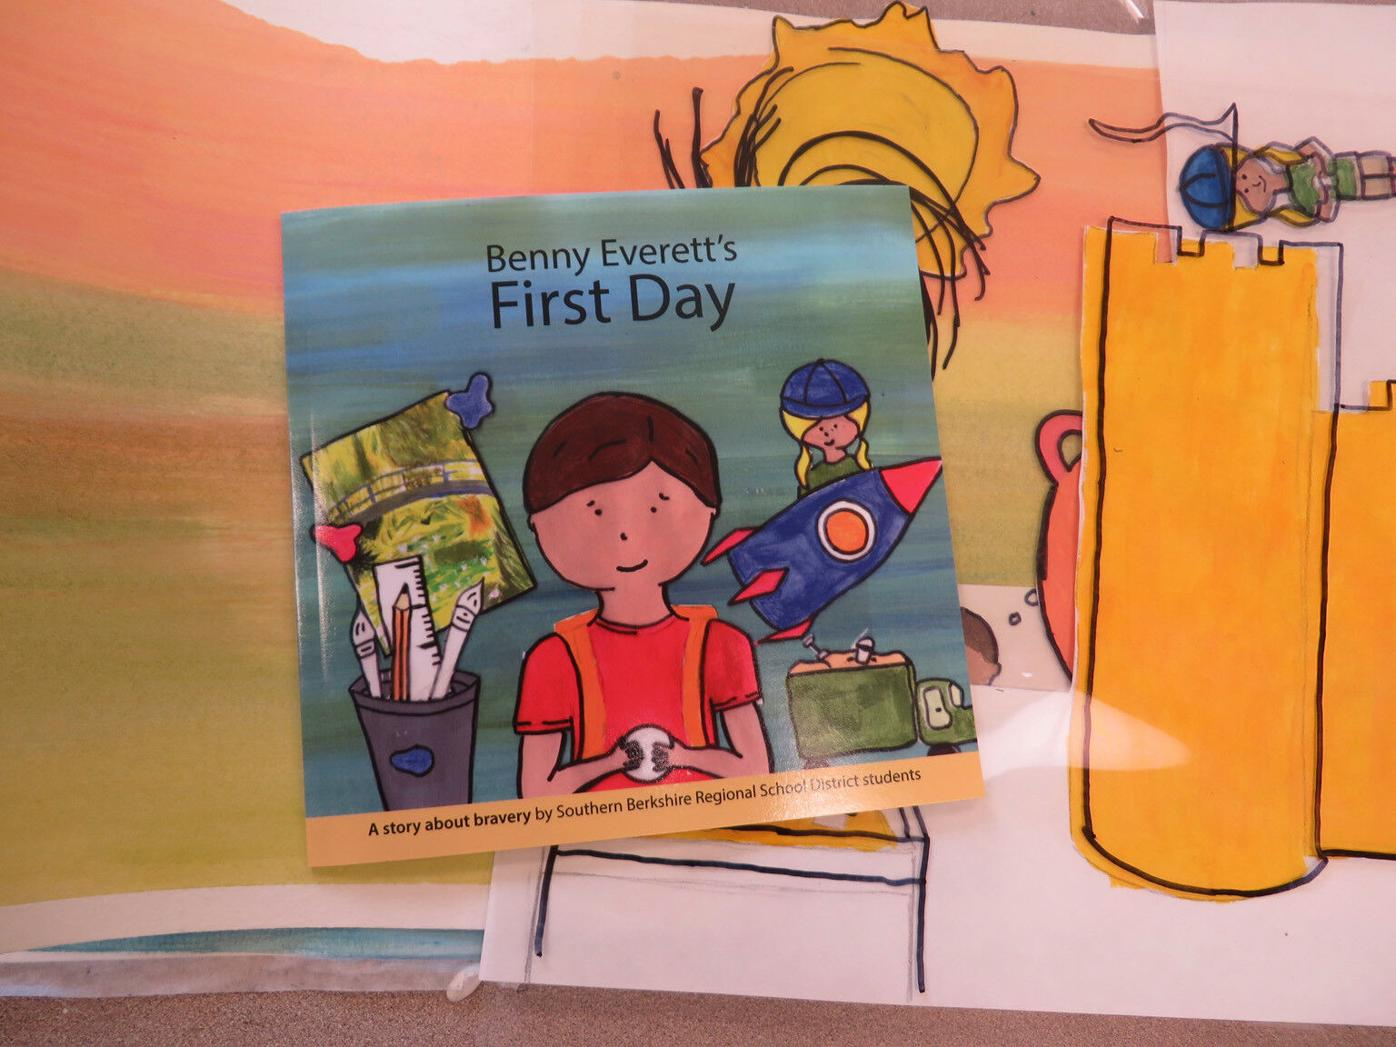 Mount Everett students collaborate on children's book